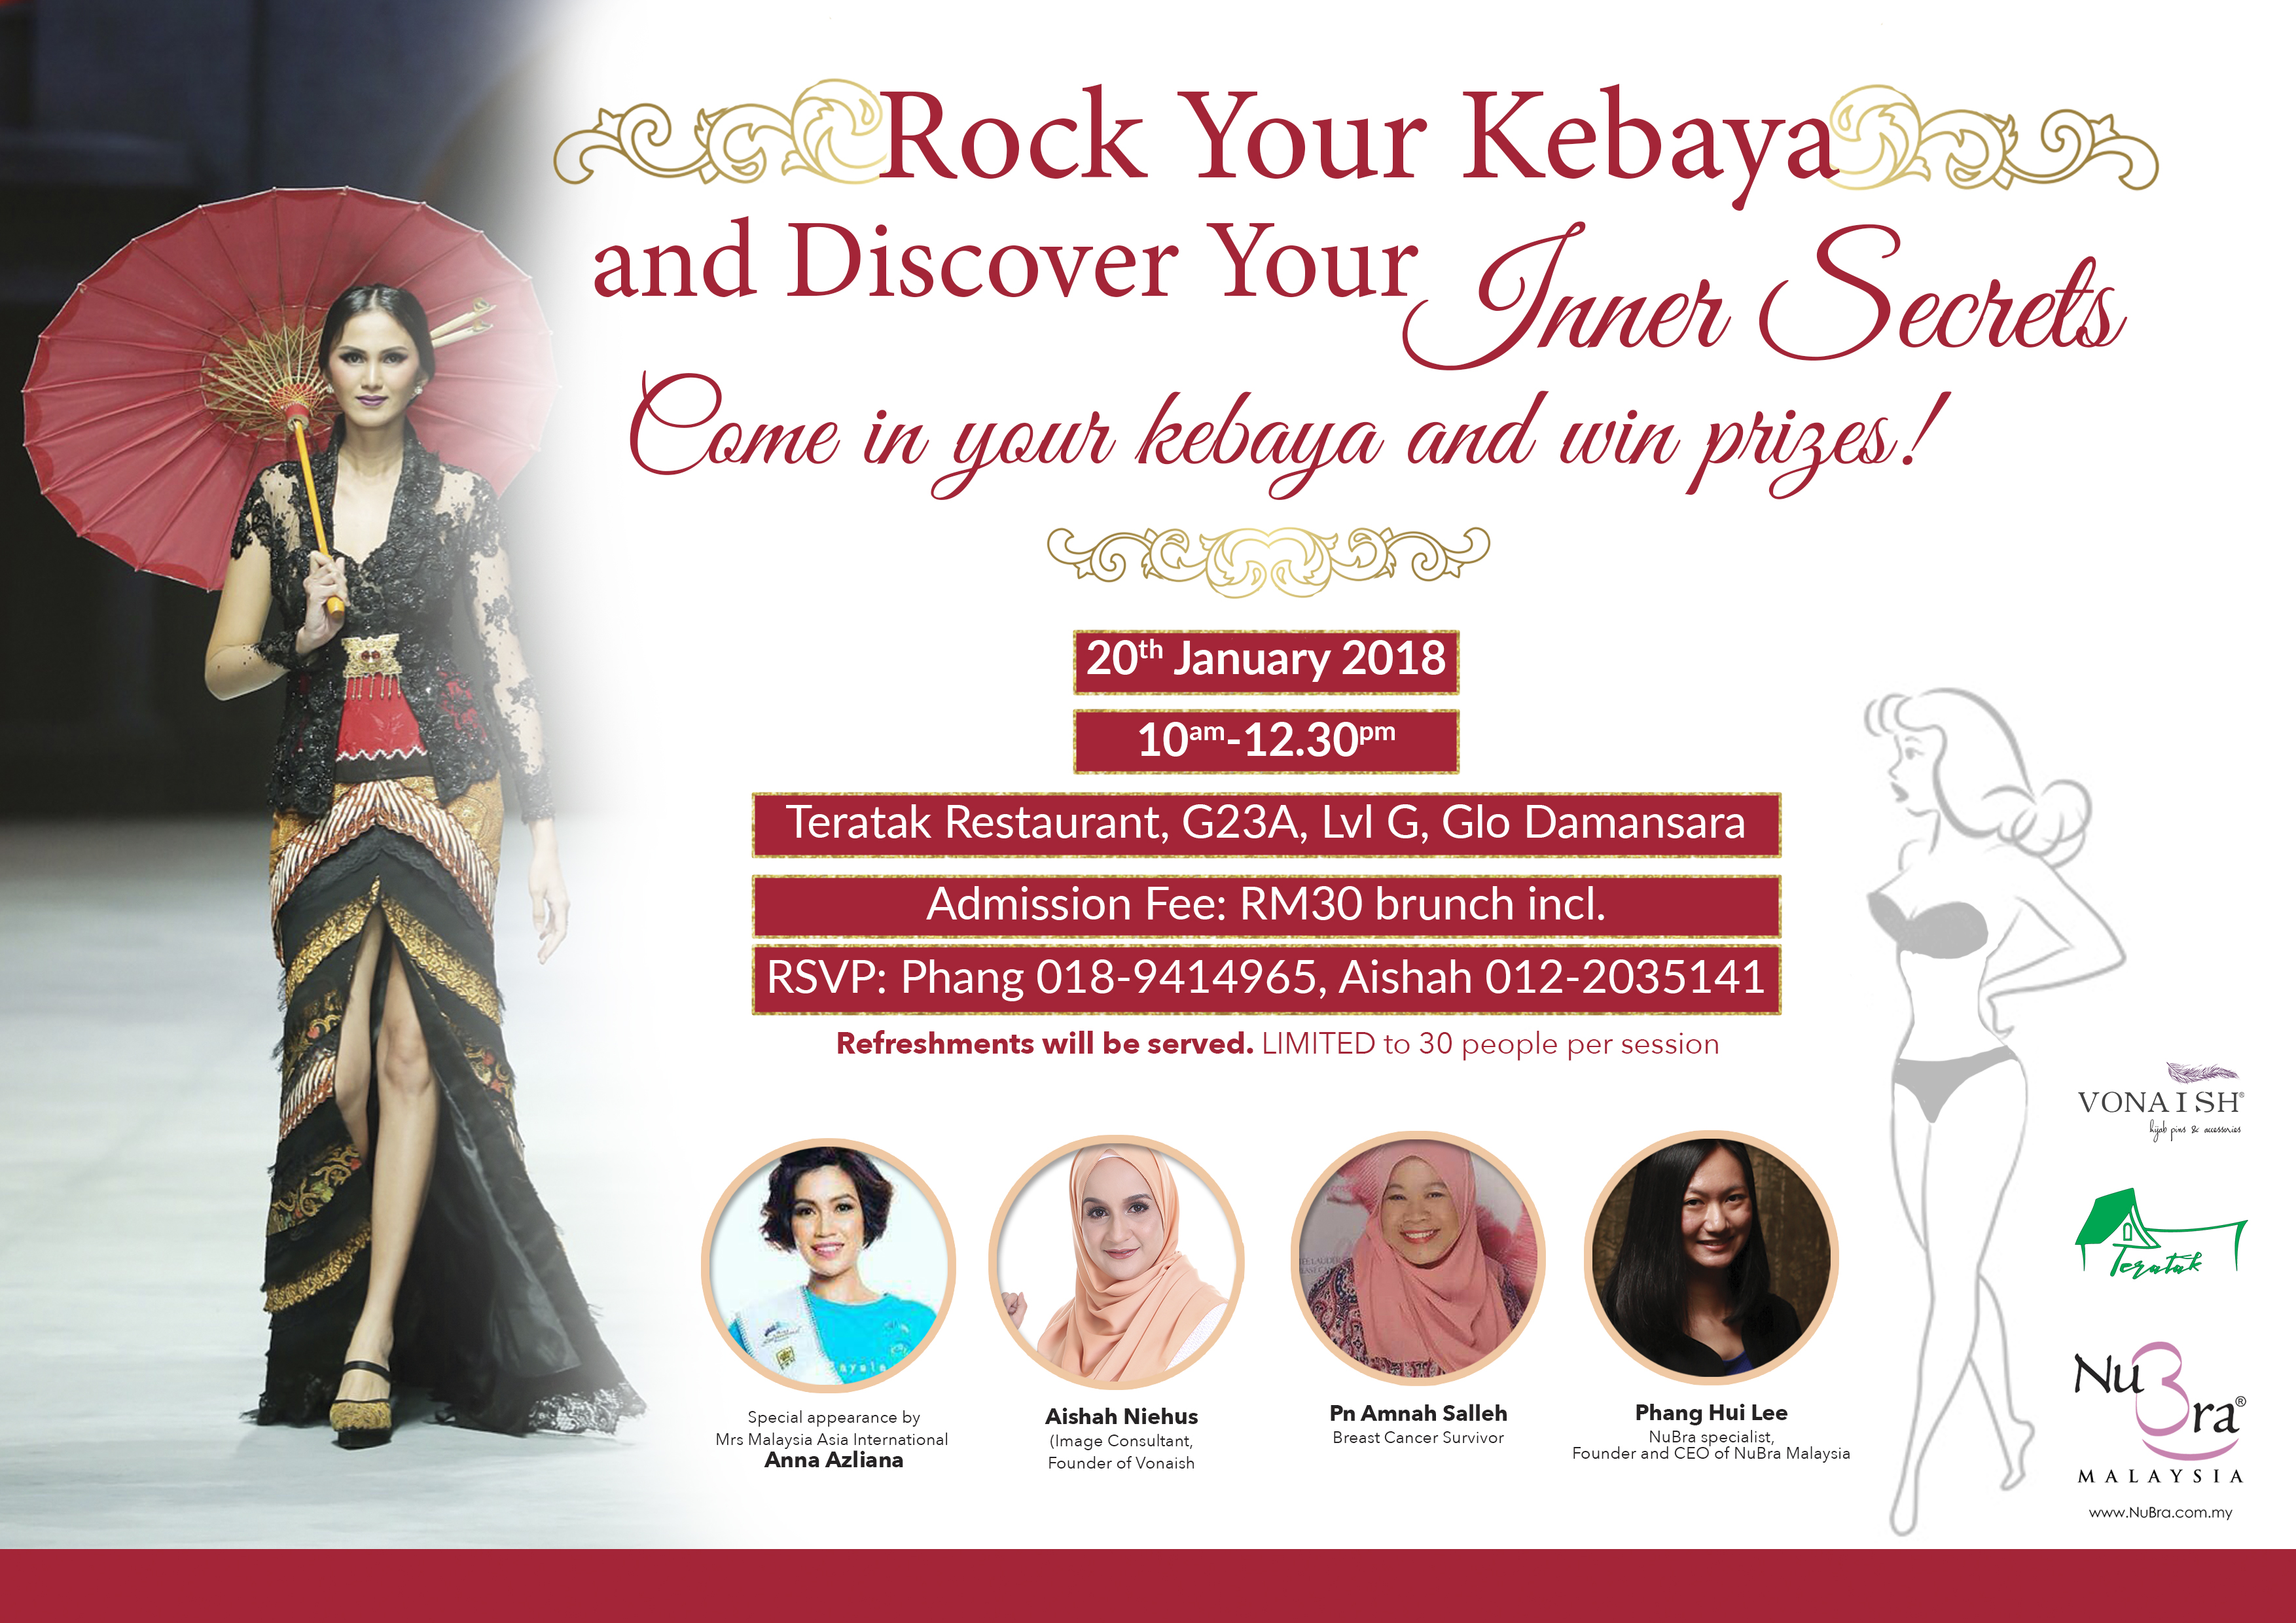 Rock Your Kebaya   Discover Your Inner Secrets  f88379afb4